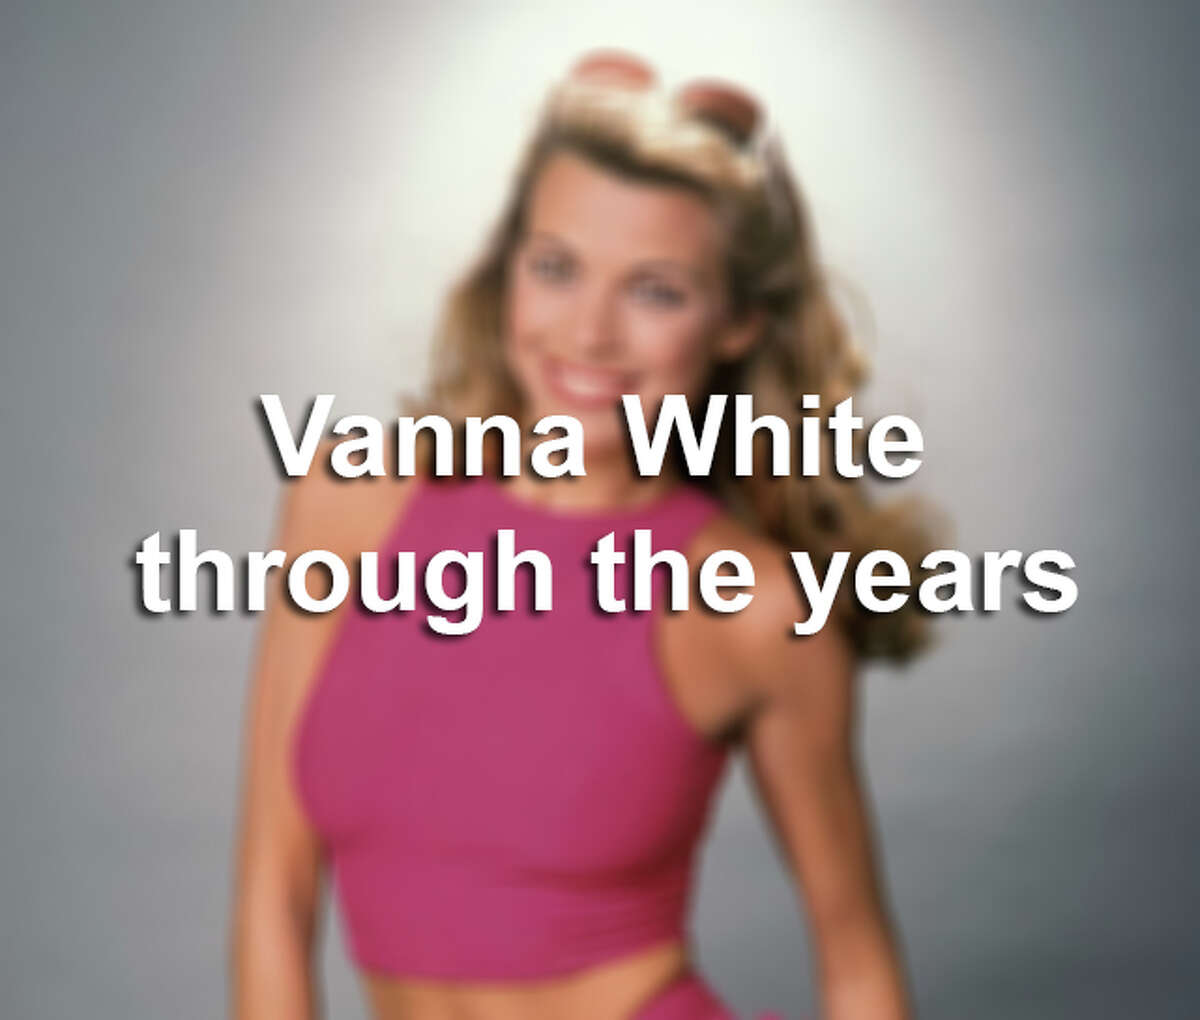 Vanna White through the years.